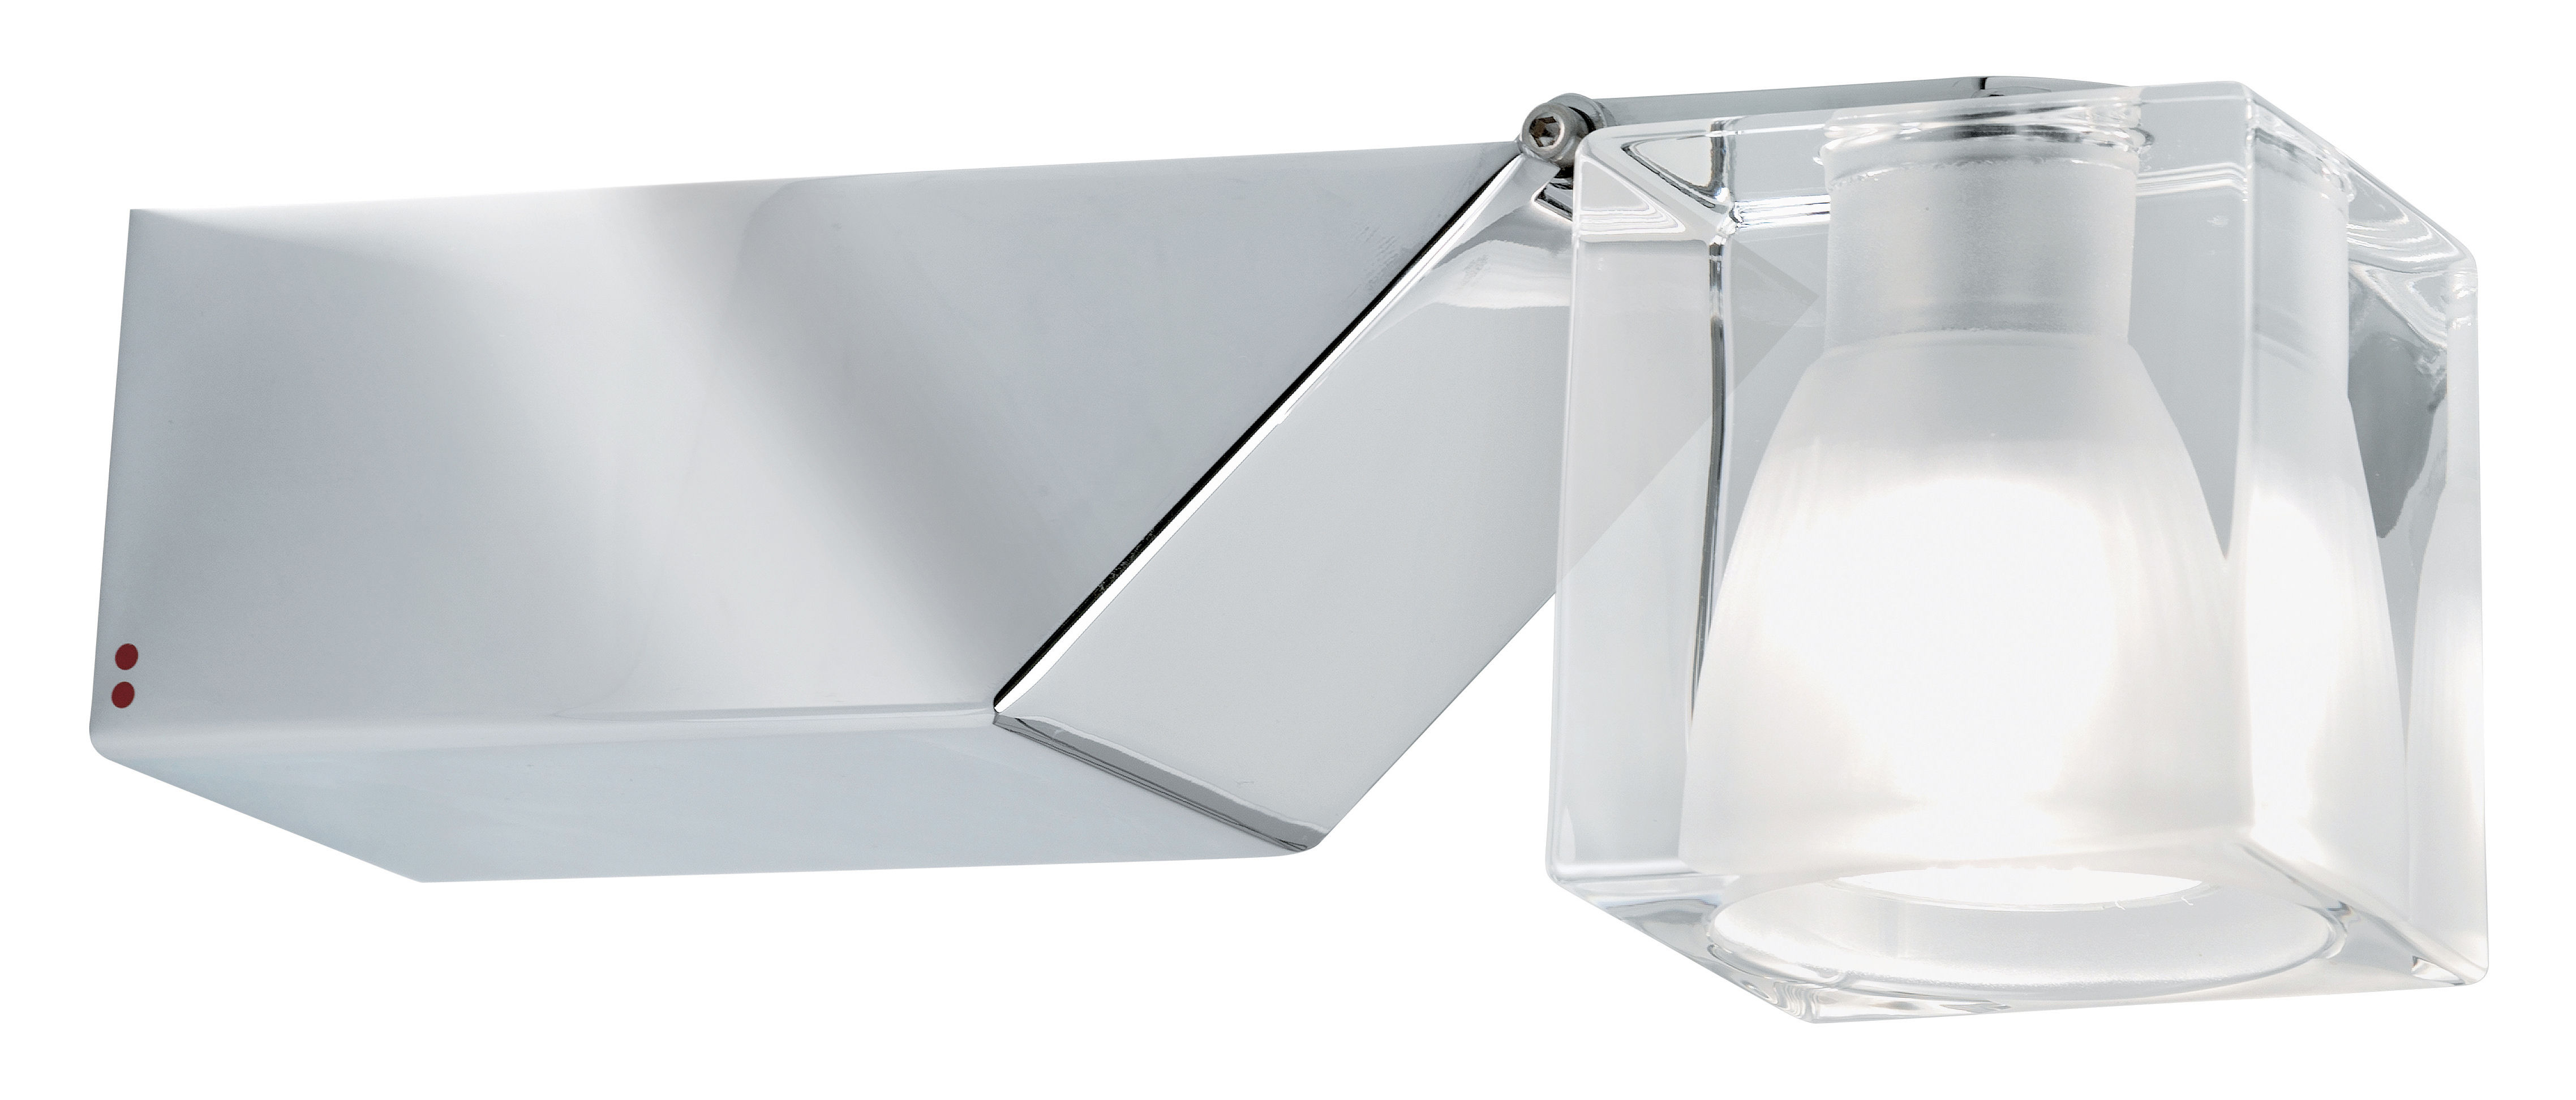 Lighting - Wall Lights - Cubetto - Crystal Glass Wall light - Swiveling by Fabbian - Transparent - Chromed metal, Glass